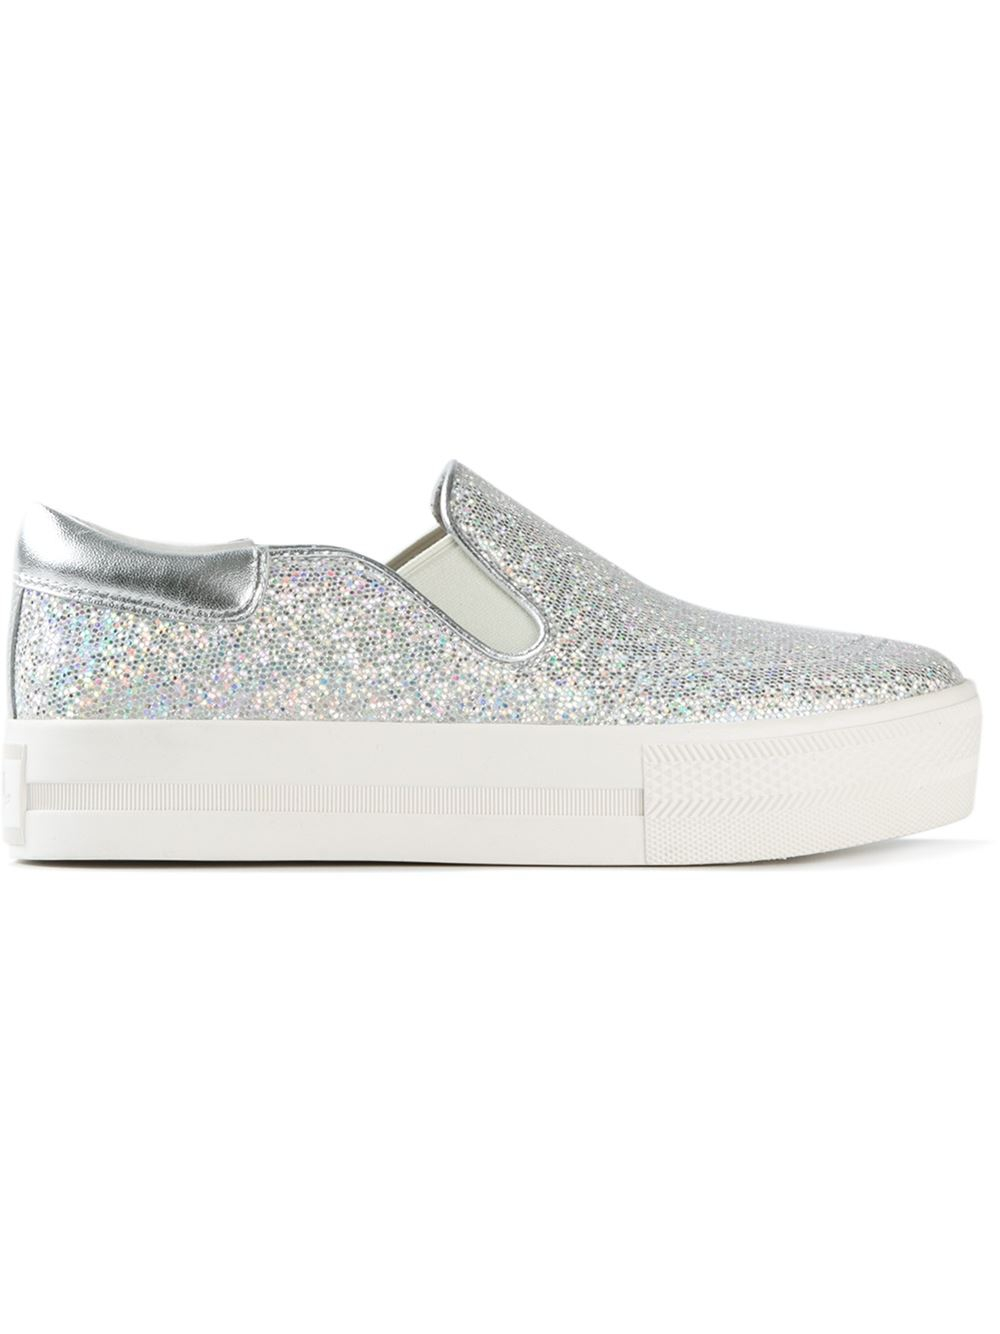 6246b8ebe91e Lyst - Ash Glitter Slip-On Sneakers in Metallic